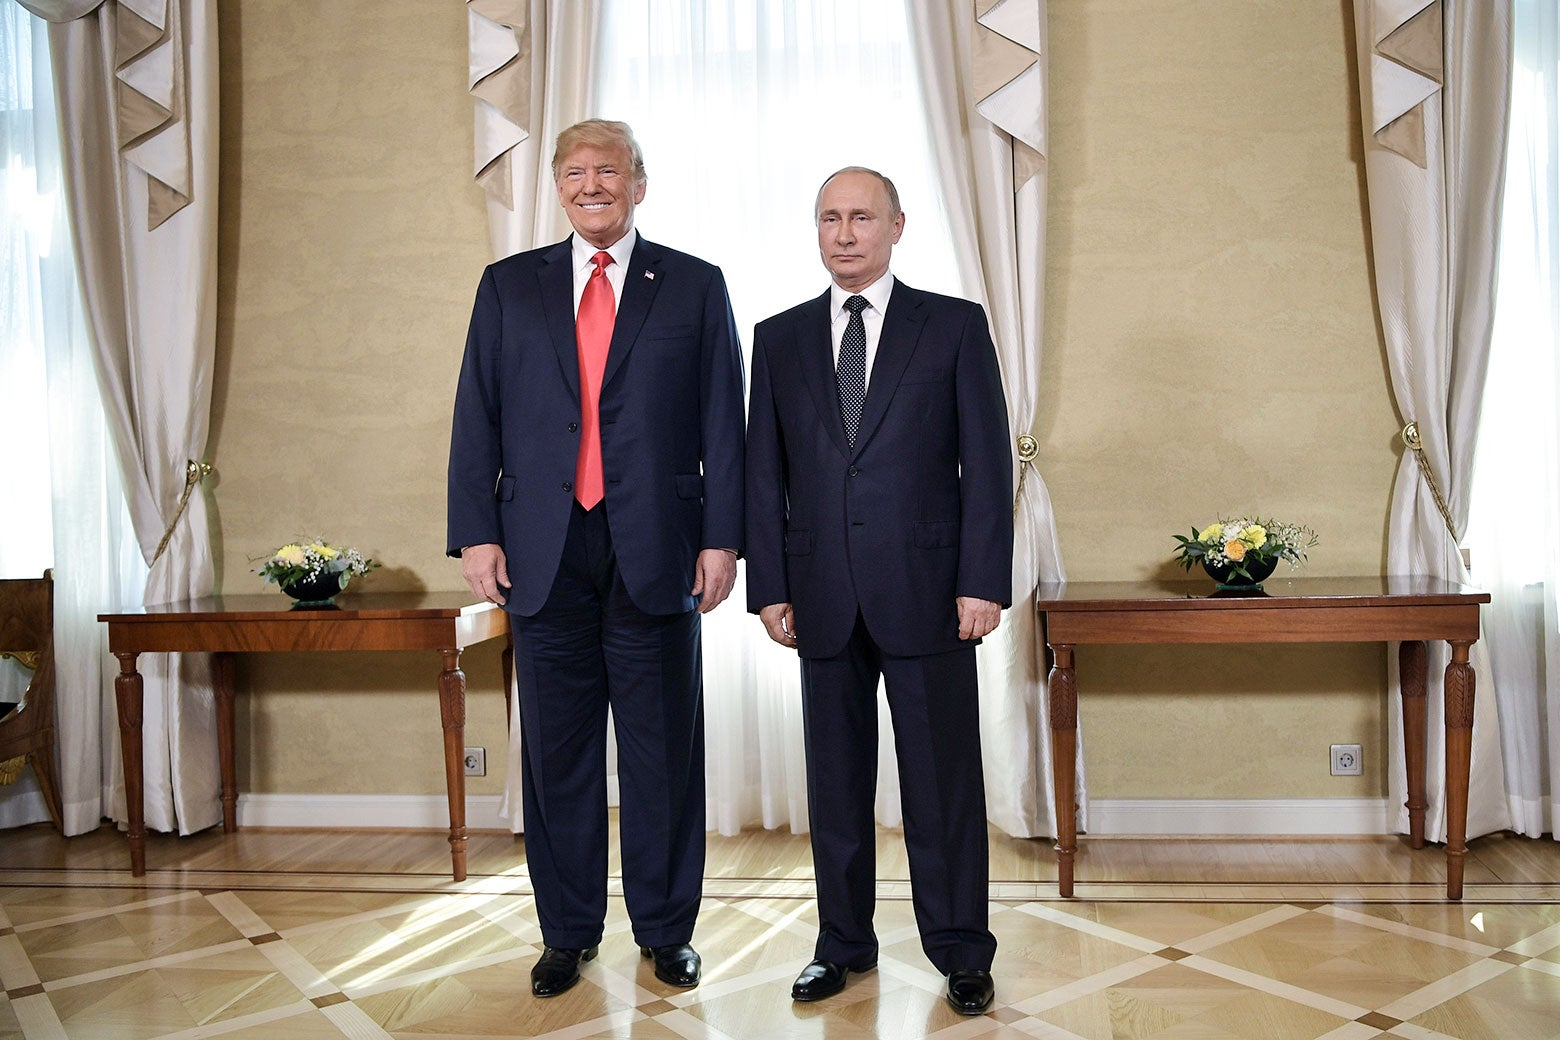 President Donald Trump and Russia's President Vladimir Putin pose ahead of a meeting in Helsinki, on July 16.